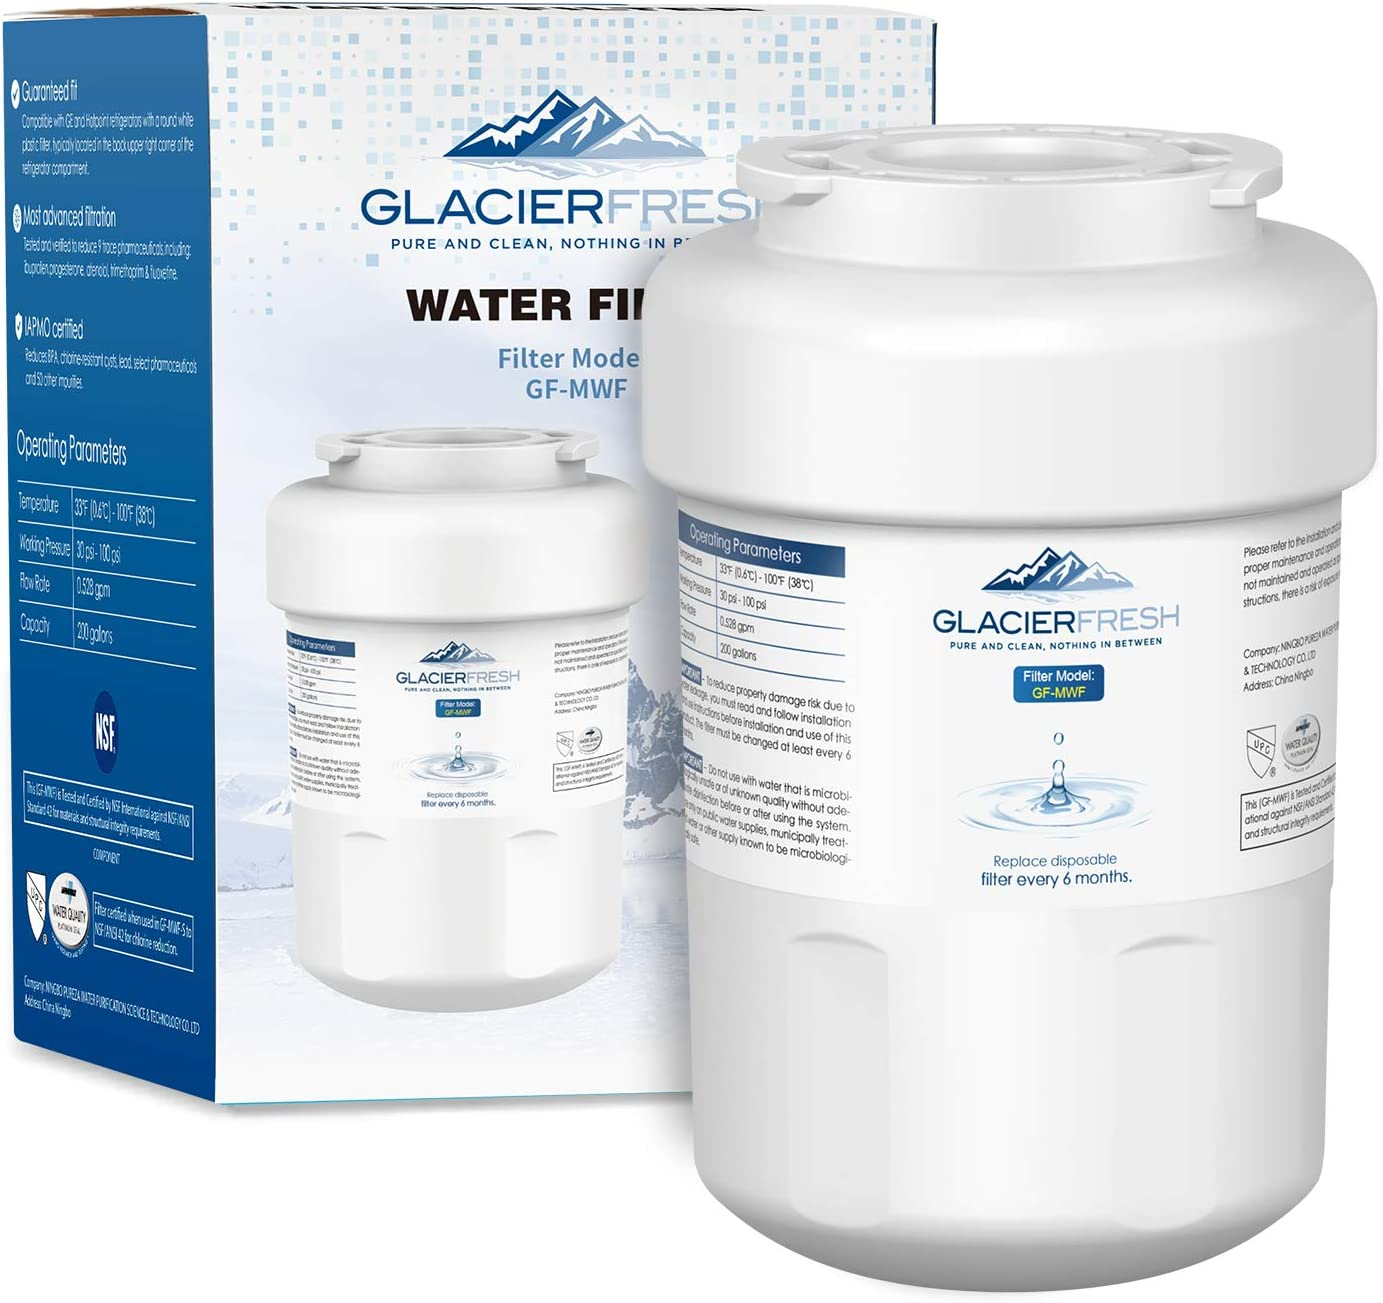 MWF Water Filter Replacement for GE Refrigerator